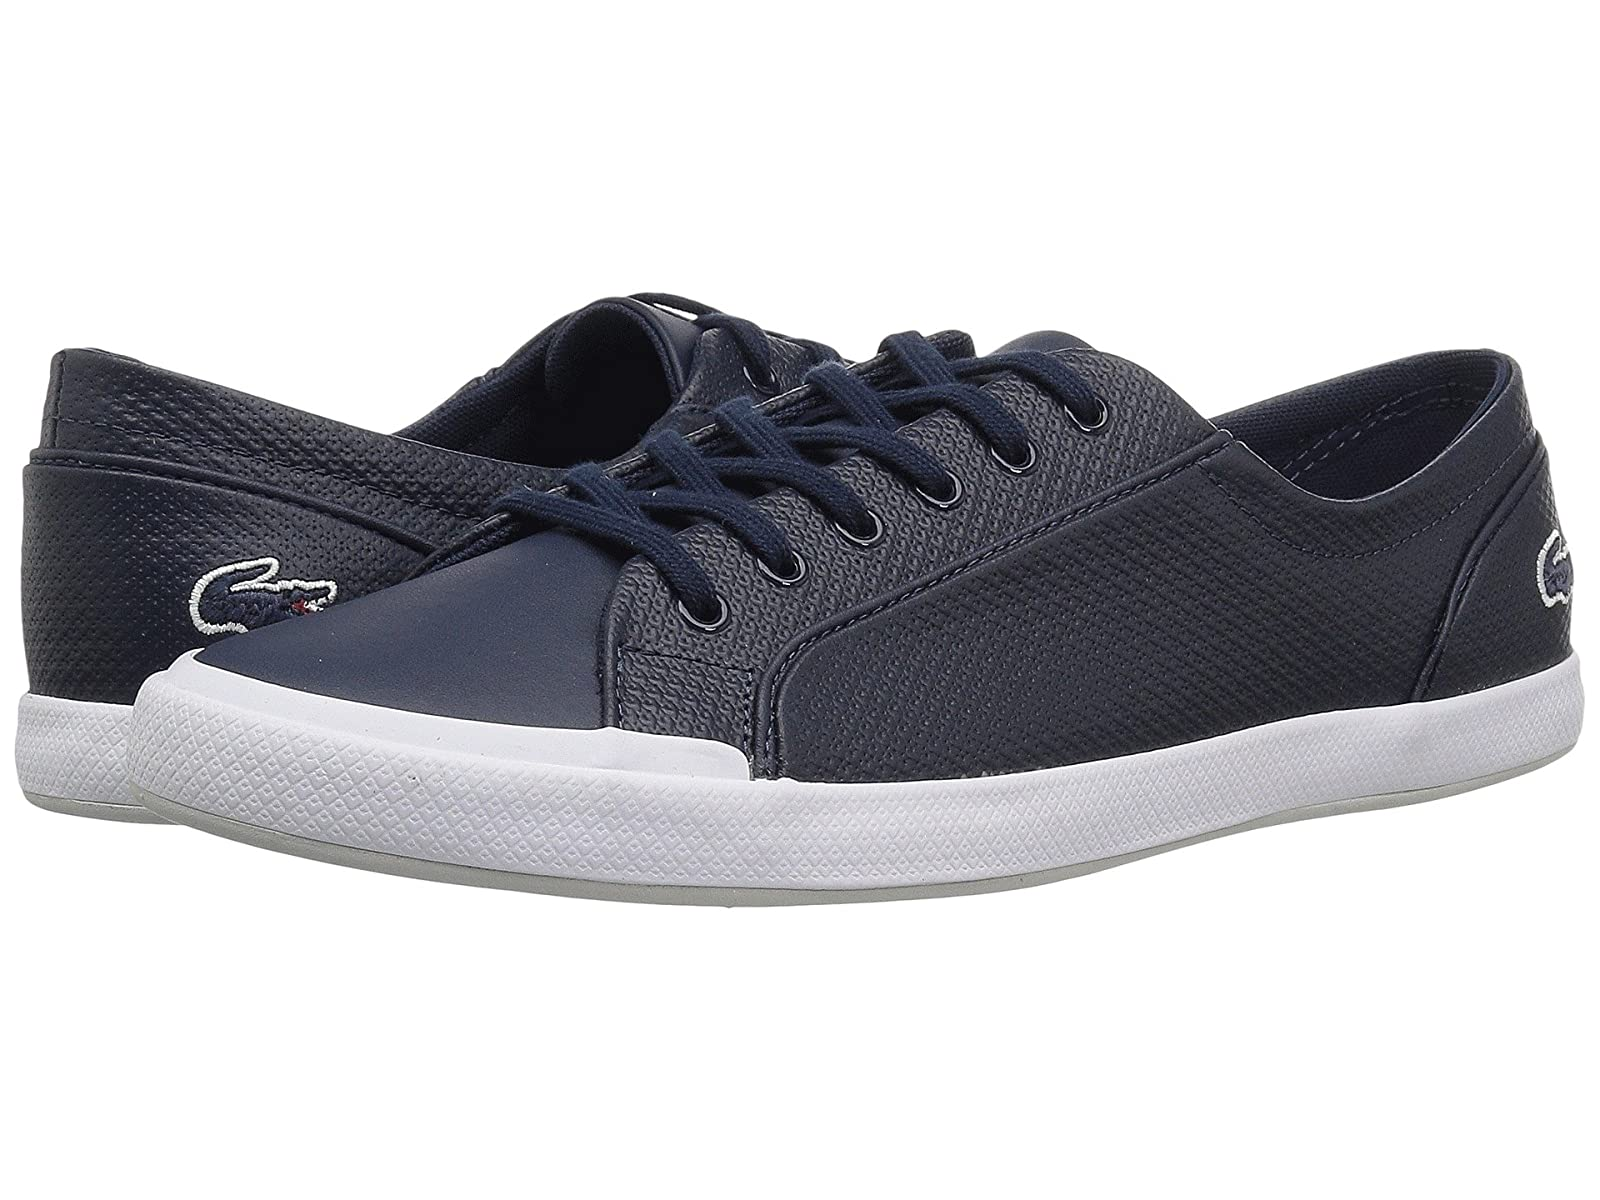 Lacoste Lancelle 6 Eye 118 1Atmospheric grades have affordable shoes